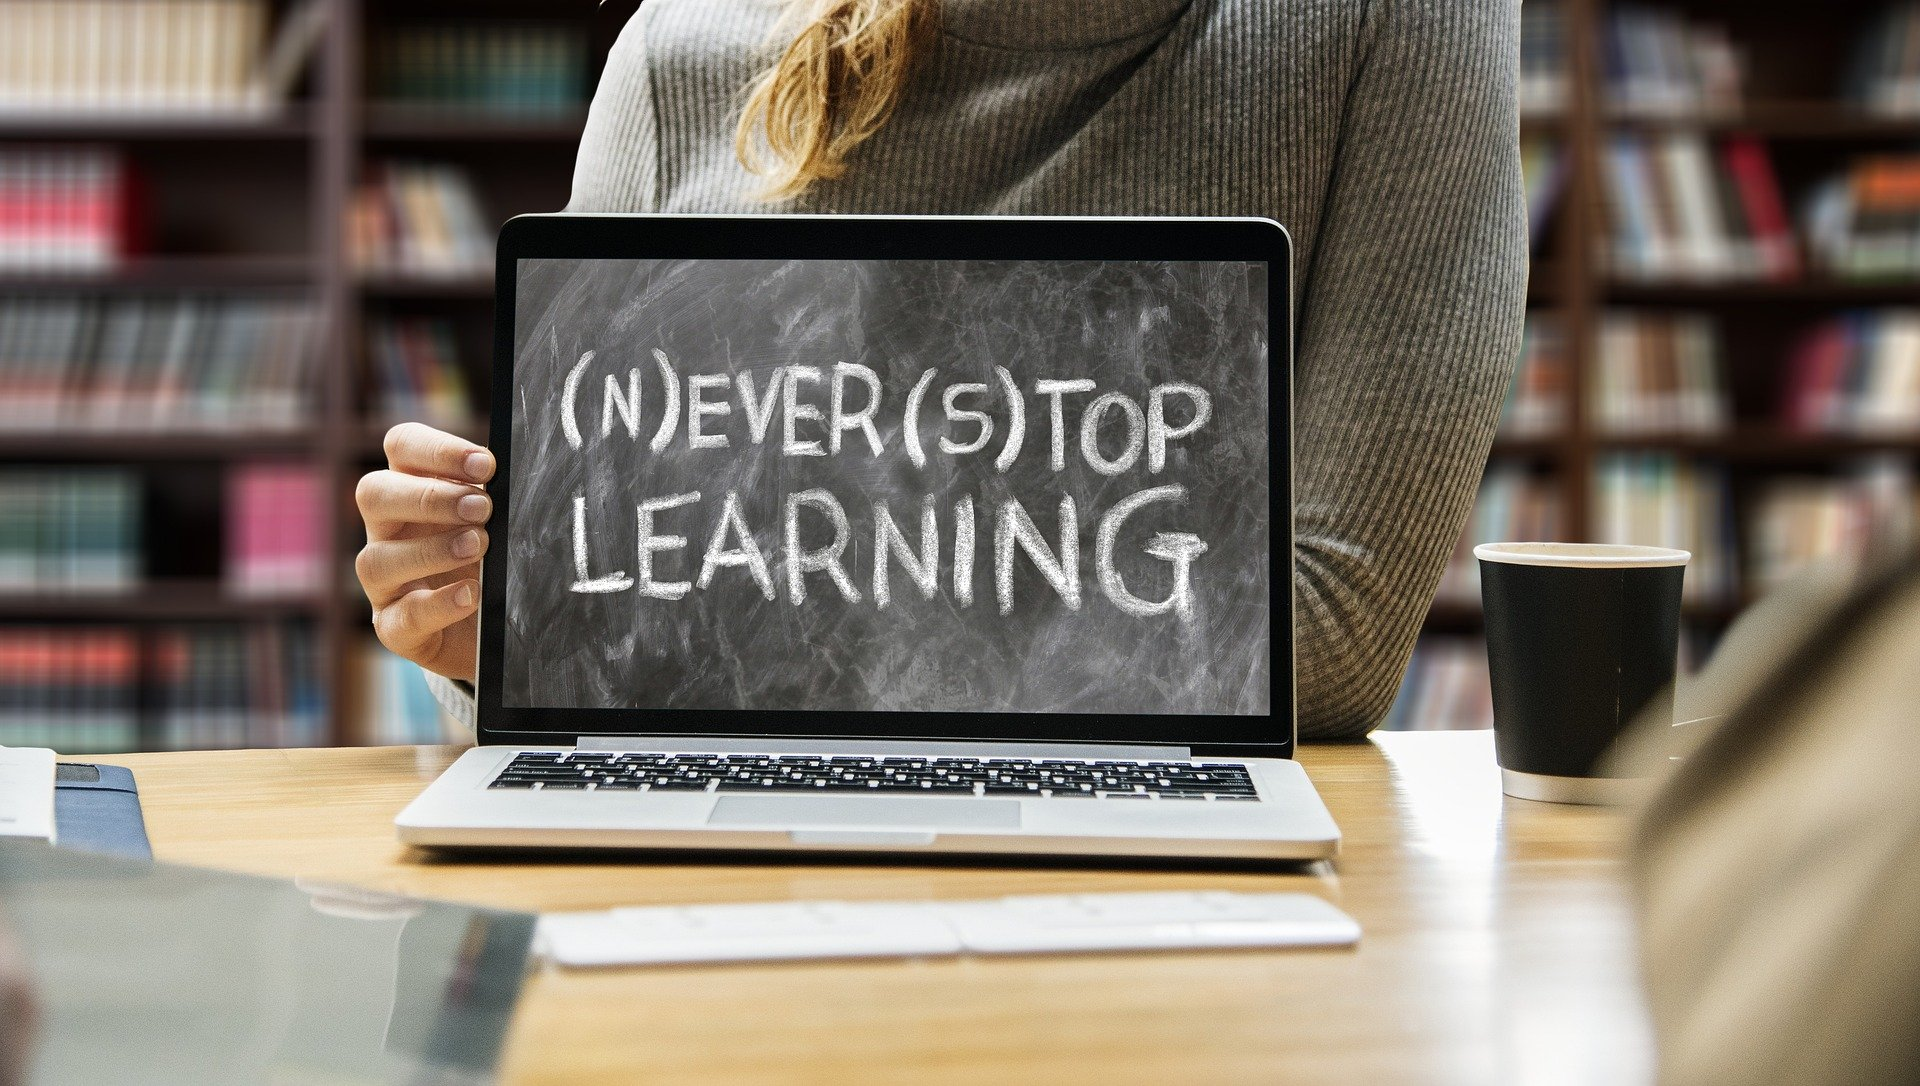 online learning lesson plans for k-12 and college students